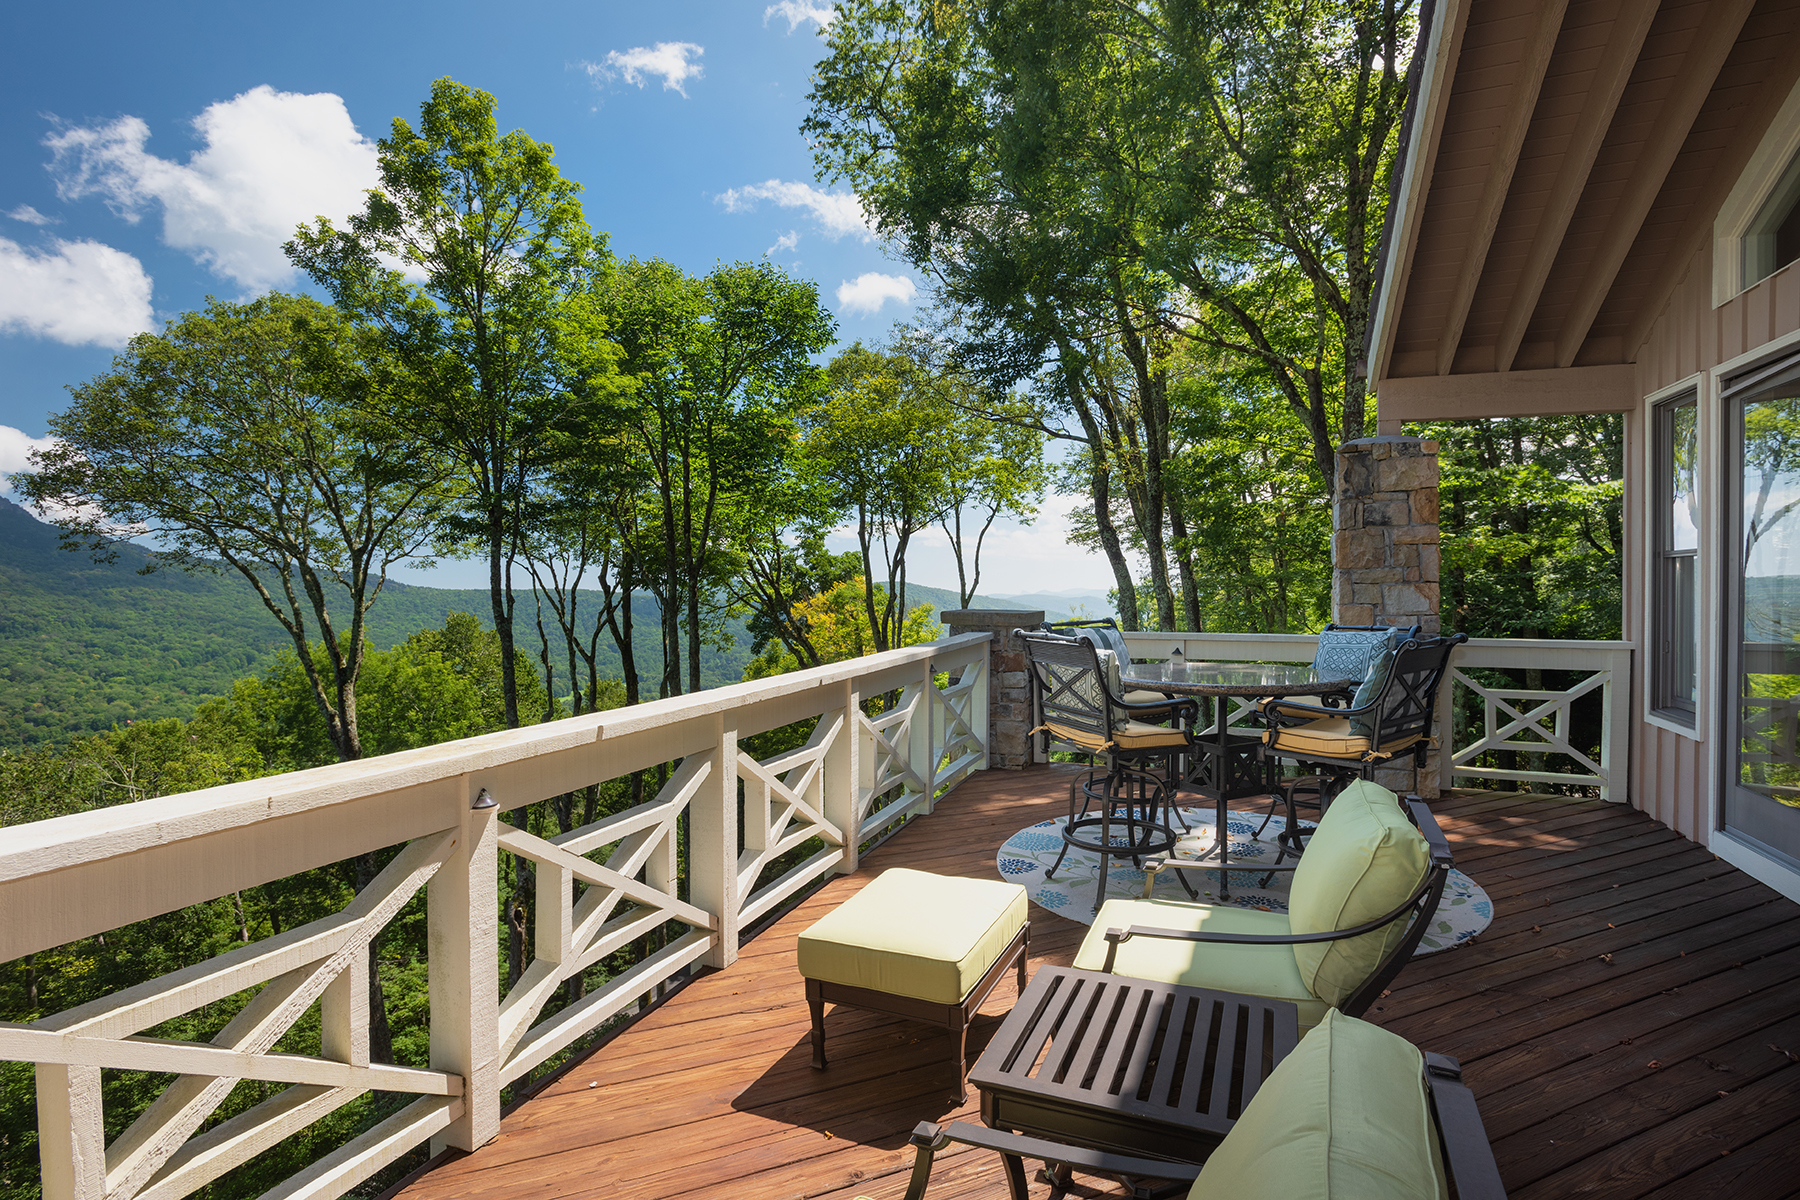 Single Family Homes for Sale at LINVILLE - LINVILLE RIDGE 1041 Club Cliffs Dr Linville, North Carolina 28646 United States